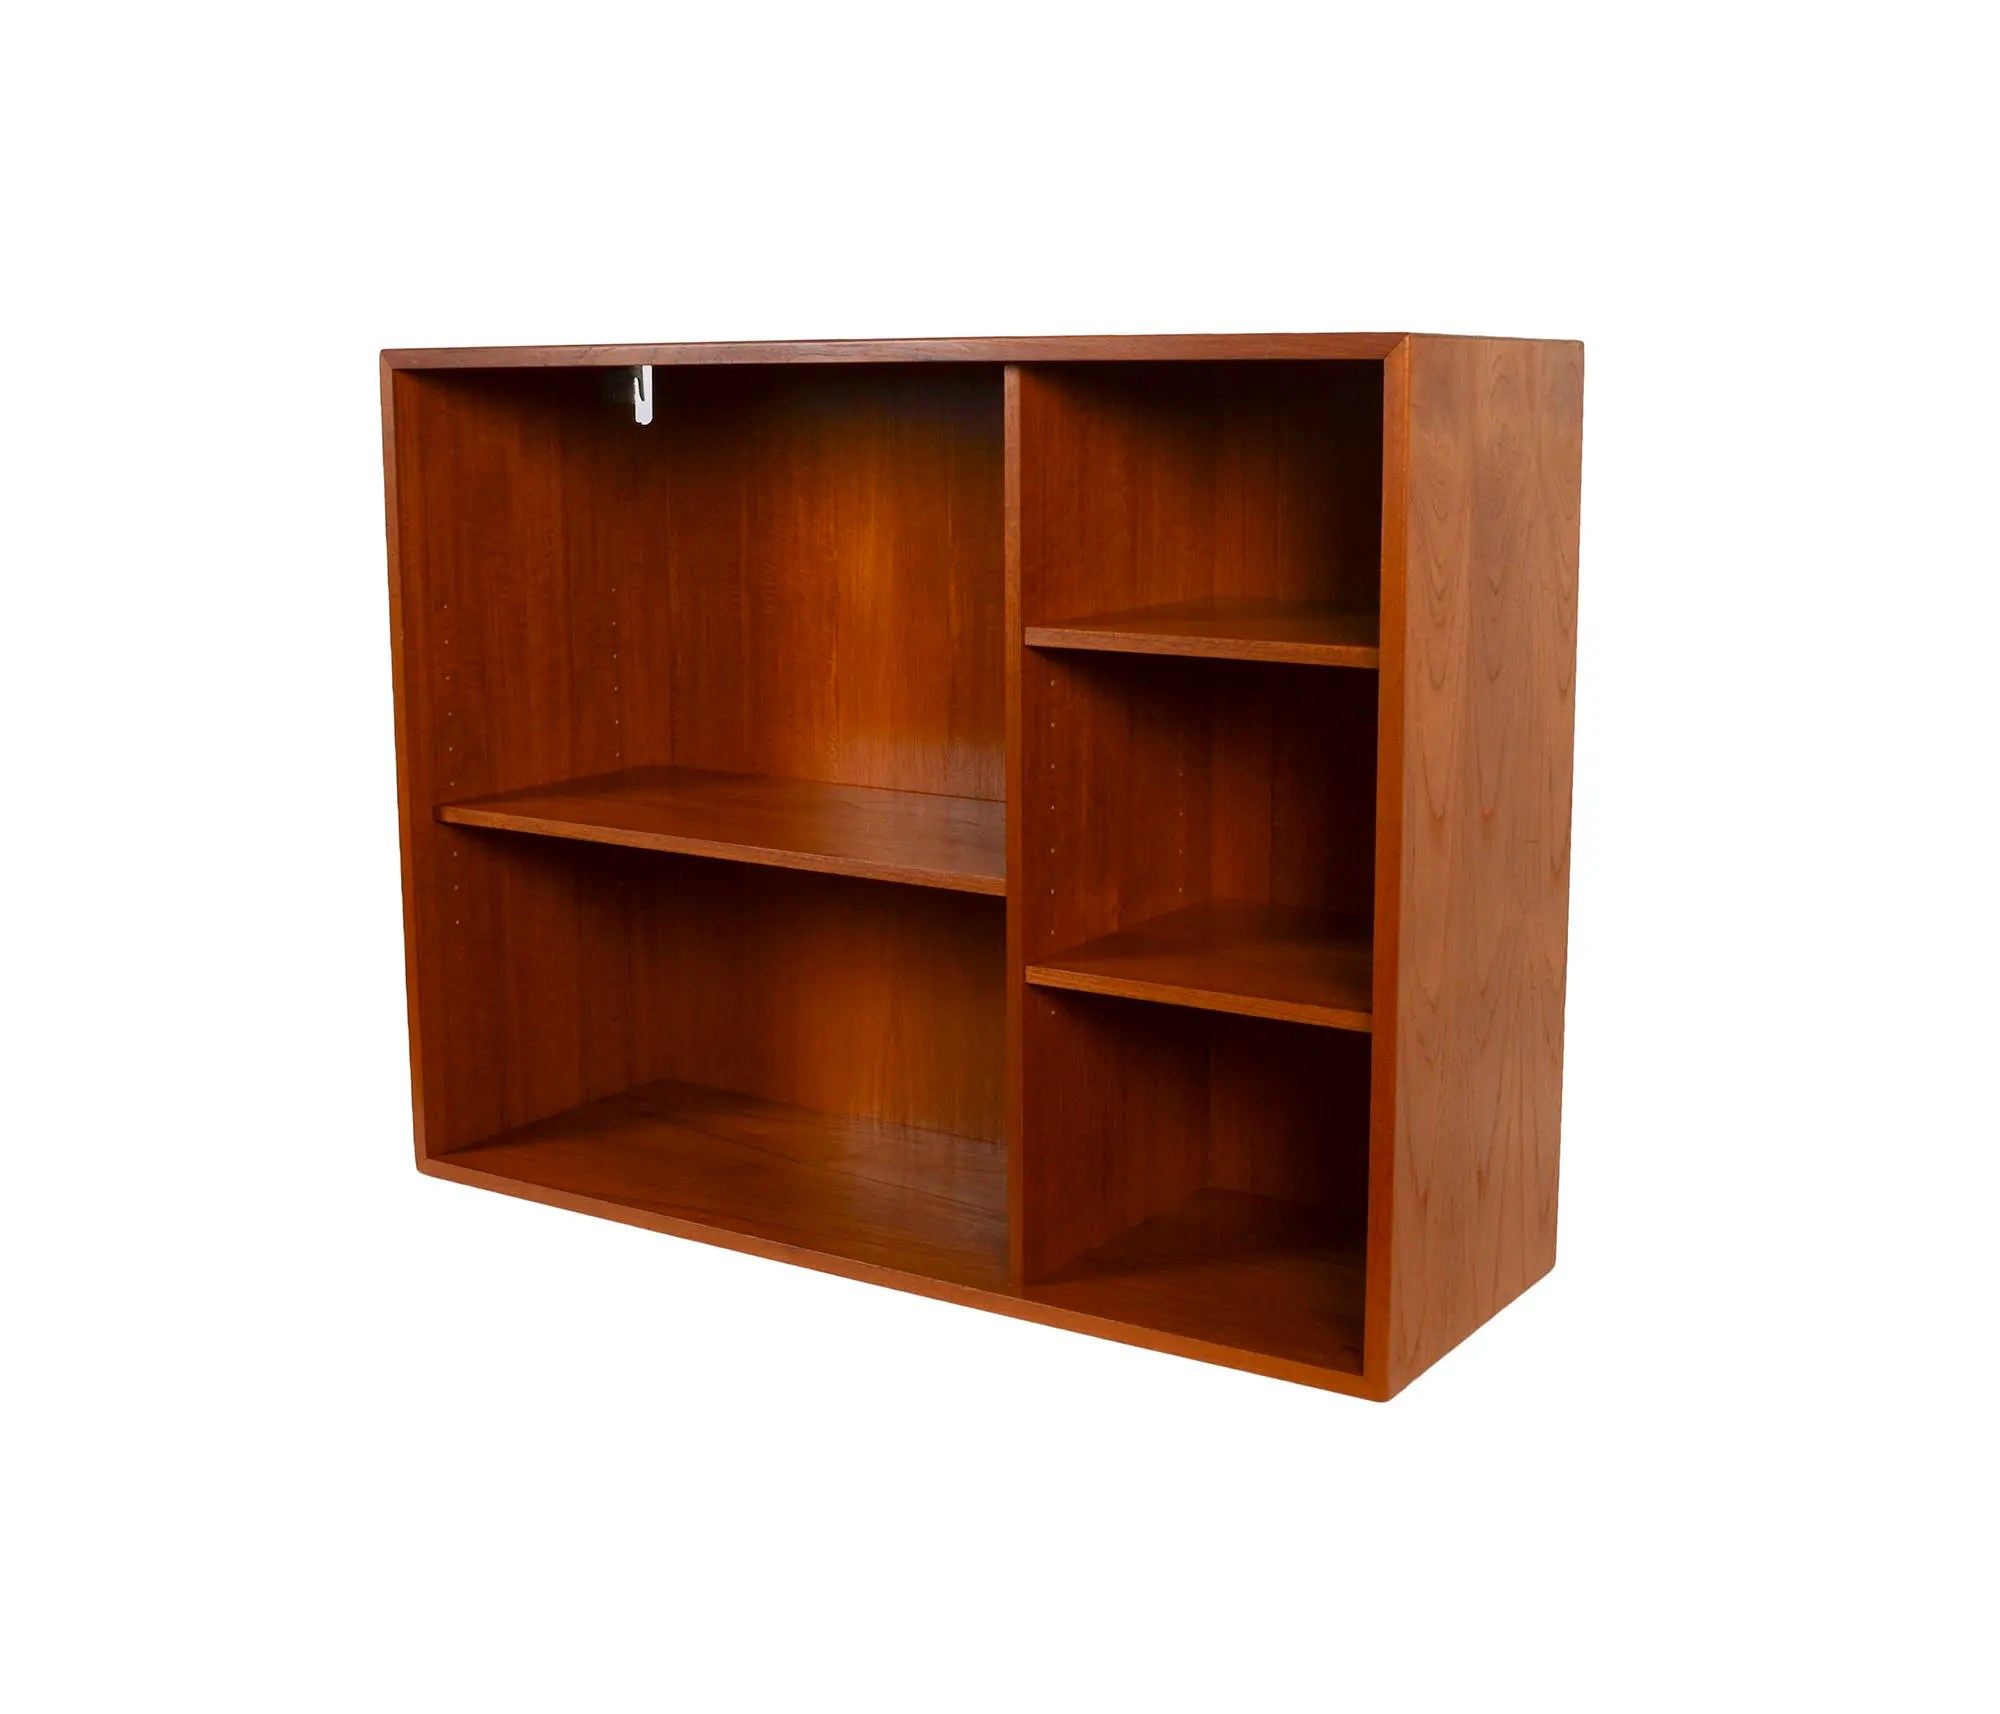 Danish Modern Teak Bookcase Wall Unit Floating Cabinet By Hg Furniture Hansen Guldborg